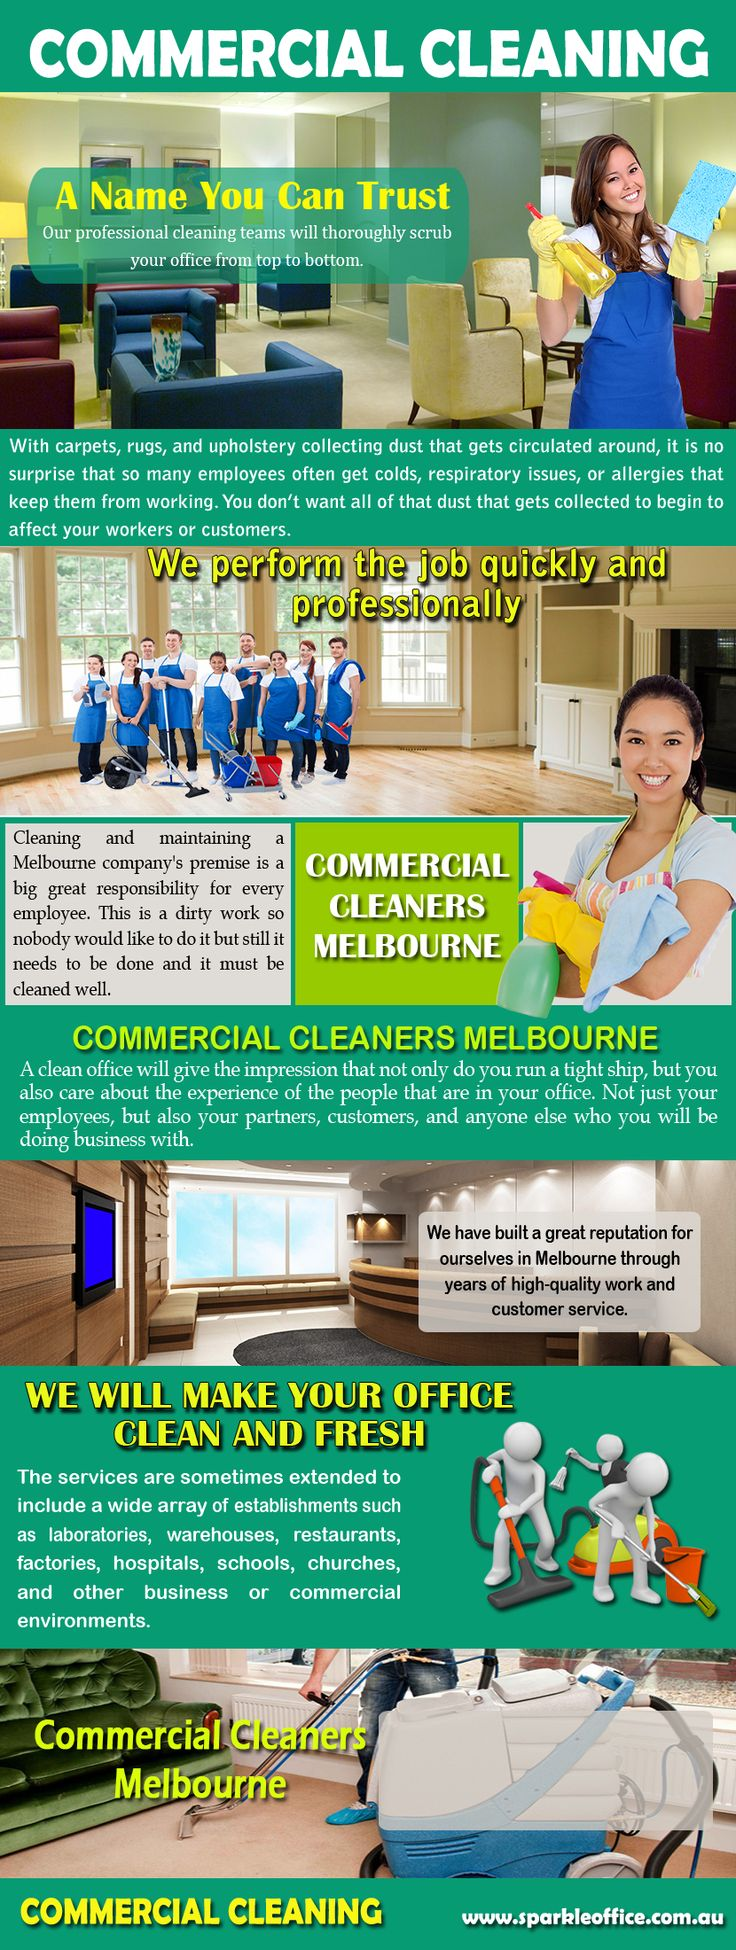 """Visit this site https://www.facebook.com/End-of-Lease-Cleaning-Melbourne-1527963877420356/ for more information on Commercial Cleaning. Commercial Cleaning service companies use their """"regular"""" toxic commercial products to clean your office or building, they sometimes must dilute these products in water to use them, such as when they're mopping the floor. When they dump that water, the dirt from the floor goes with it into the sewer system, of course,"""